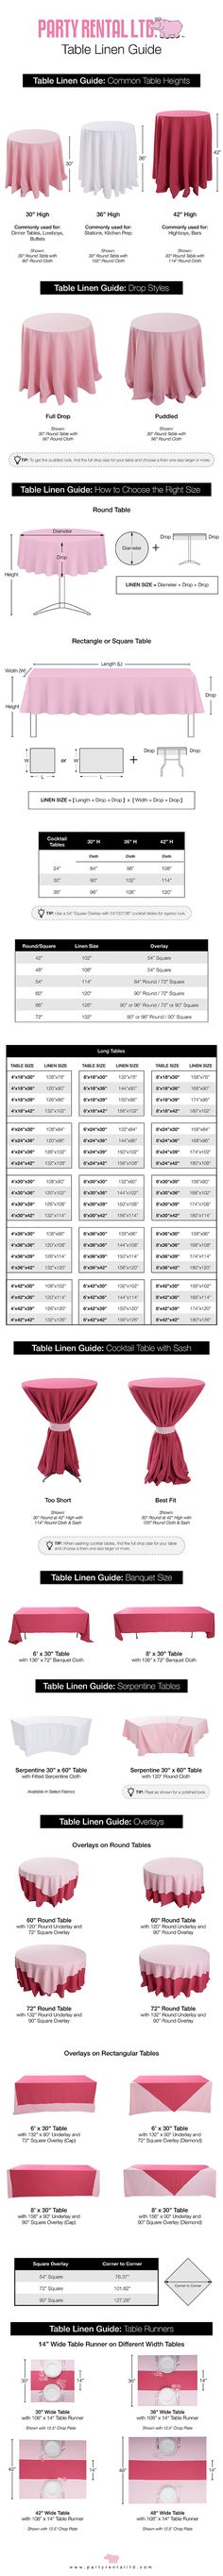 The Ultimate Guide to Table Linen Sizes is your guide you choosing tablecloth sizes for weddings and events. Wedding Tips, Trendy Wedding, Wedding Events, Weddings, Wedding Tablecloths, Wedding Table Linens, Wedding Decor, Party Planning, Wedding Planning